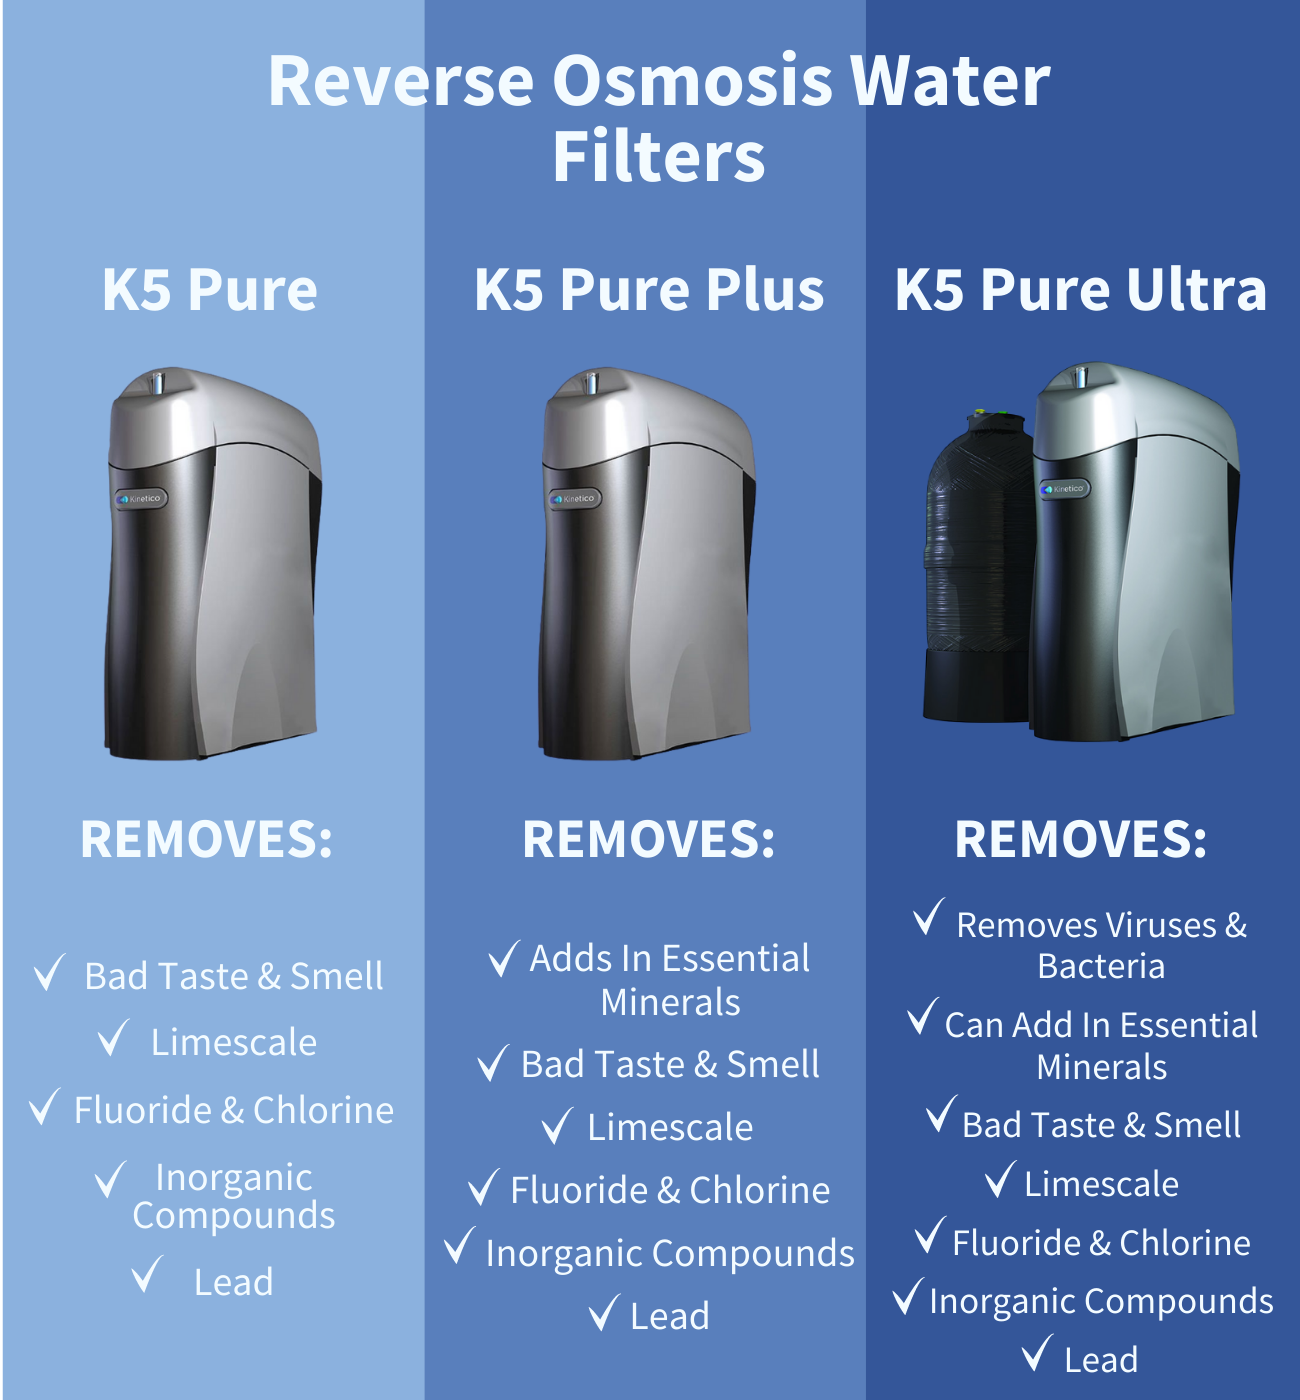 Kinetico water filter comparison K5 Water Filters